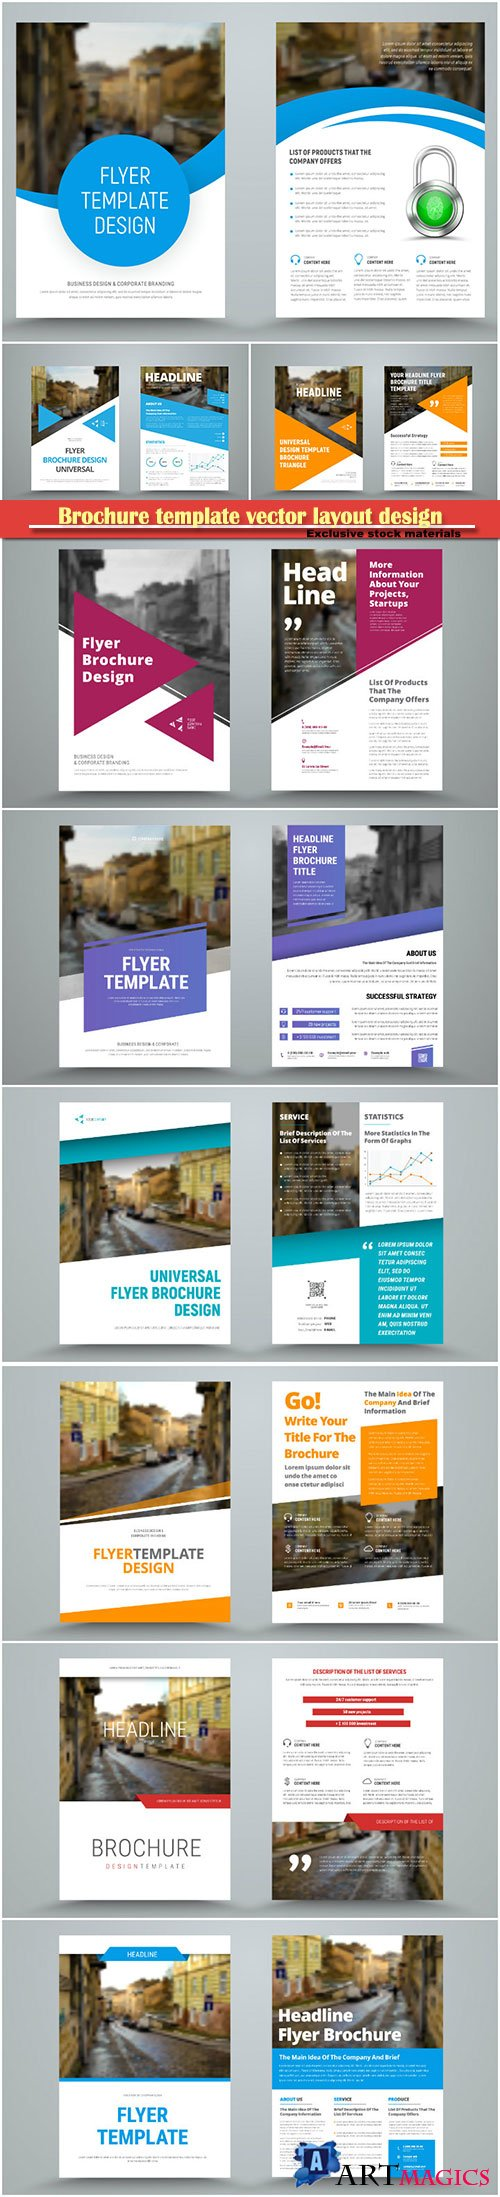 Brochure template vector layout design, corporate business annual report, magazine, flyer mockup # 168